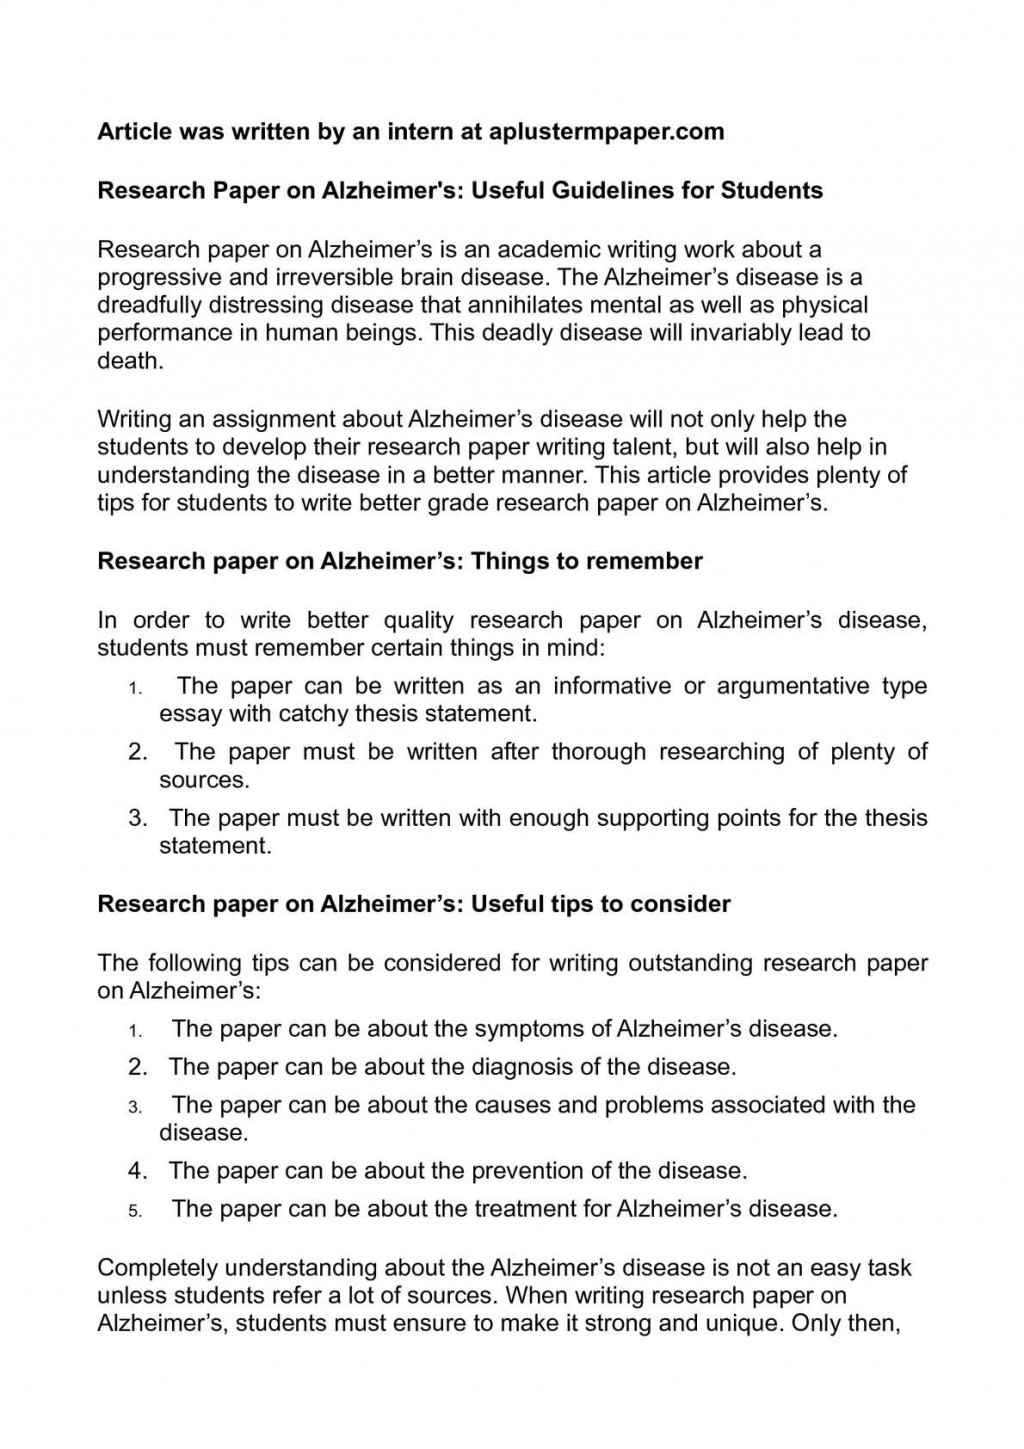 009 Research Paper Thesis For Wonderful A Statement Generator Career On Schizophrenia Large